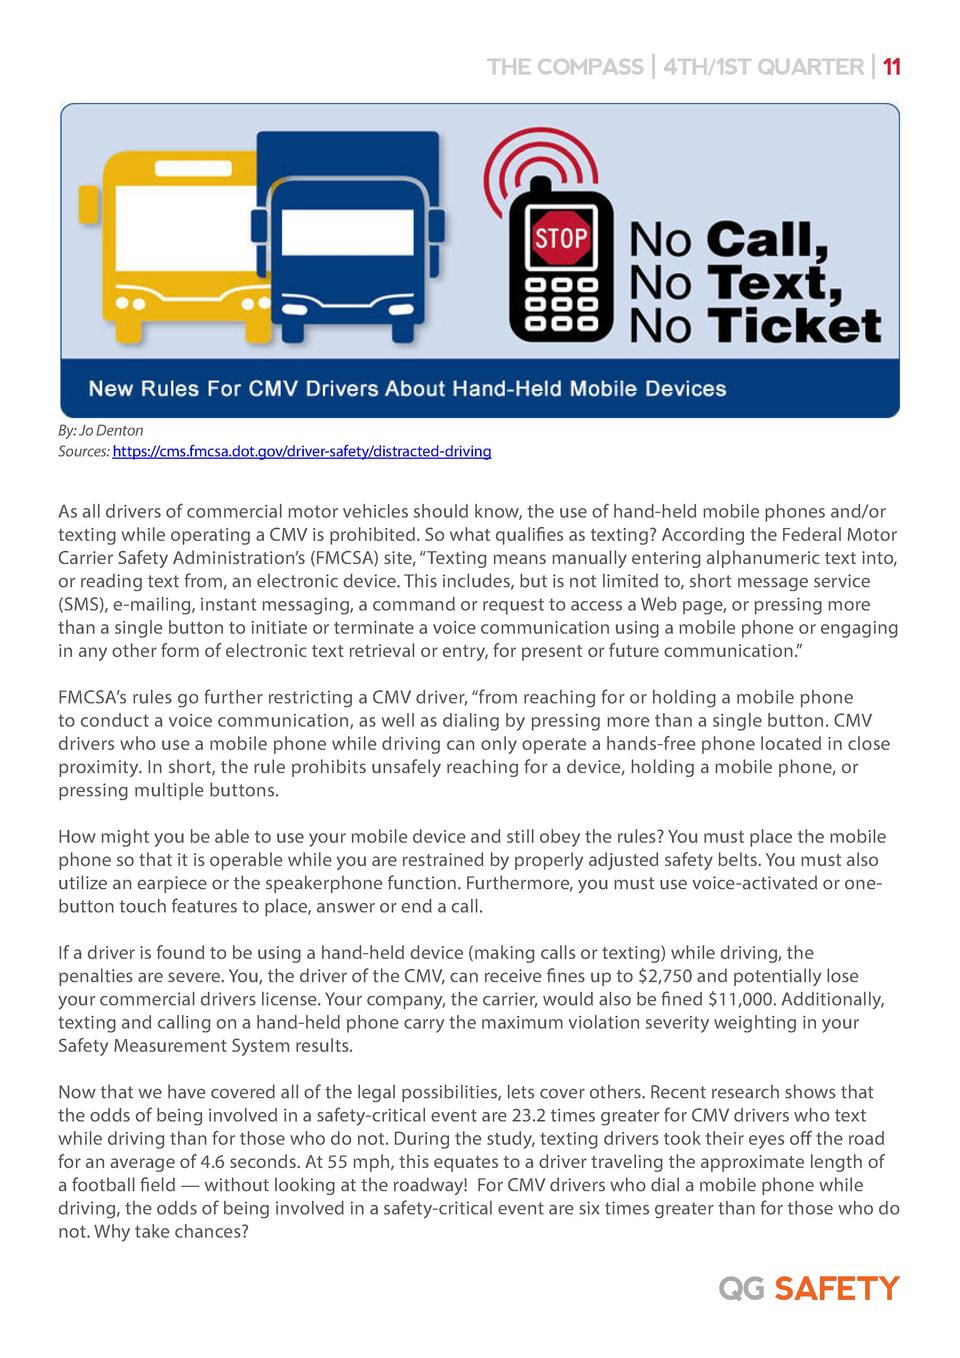 THE COMPASS   4TH 1ST QUARTER   11  By  Jo Denton Sources  https   cms.fmcsa.dot.gov driver-safety distracted-driving  As ...